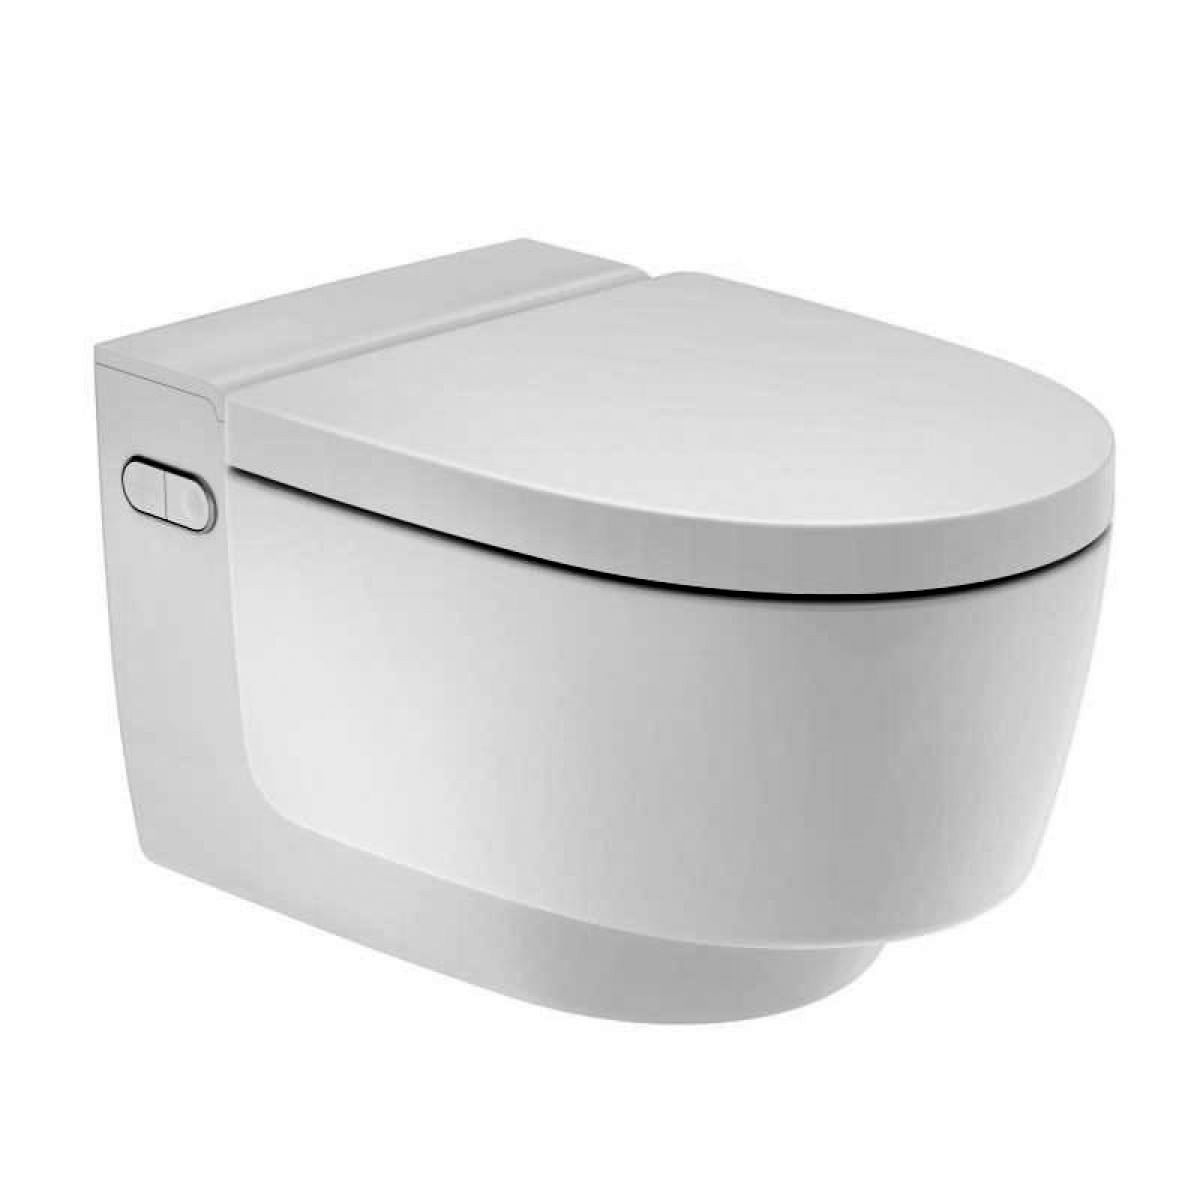 Geberit 4000 Geberit Aquaclean Mera Comfort Shower Toilet : Uk Bathrooms